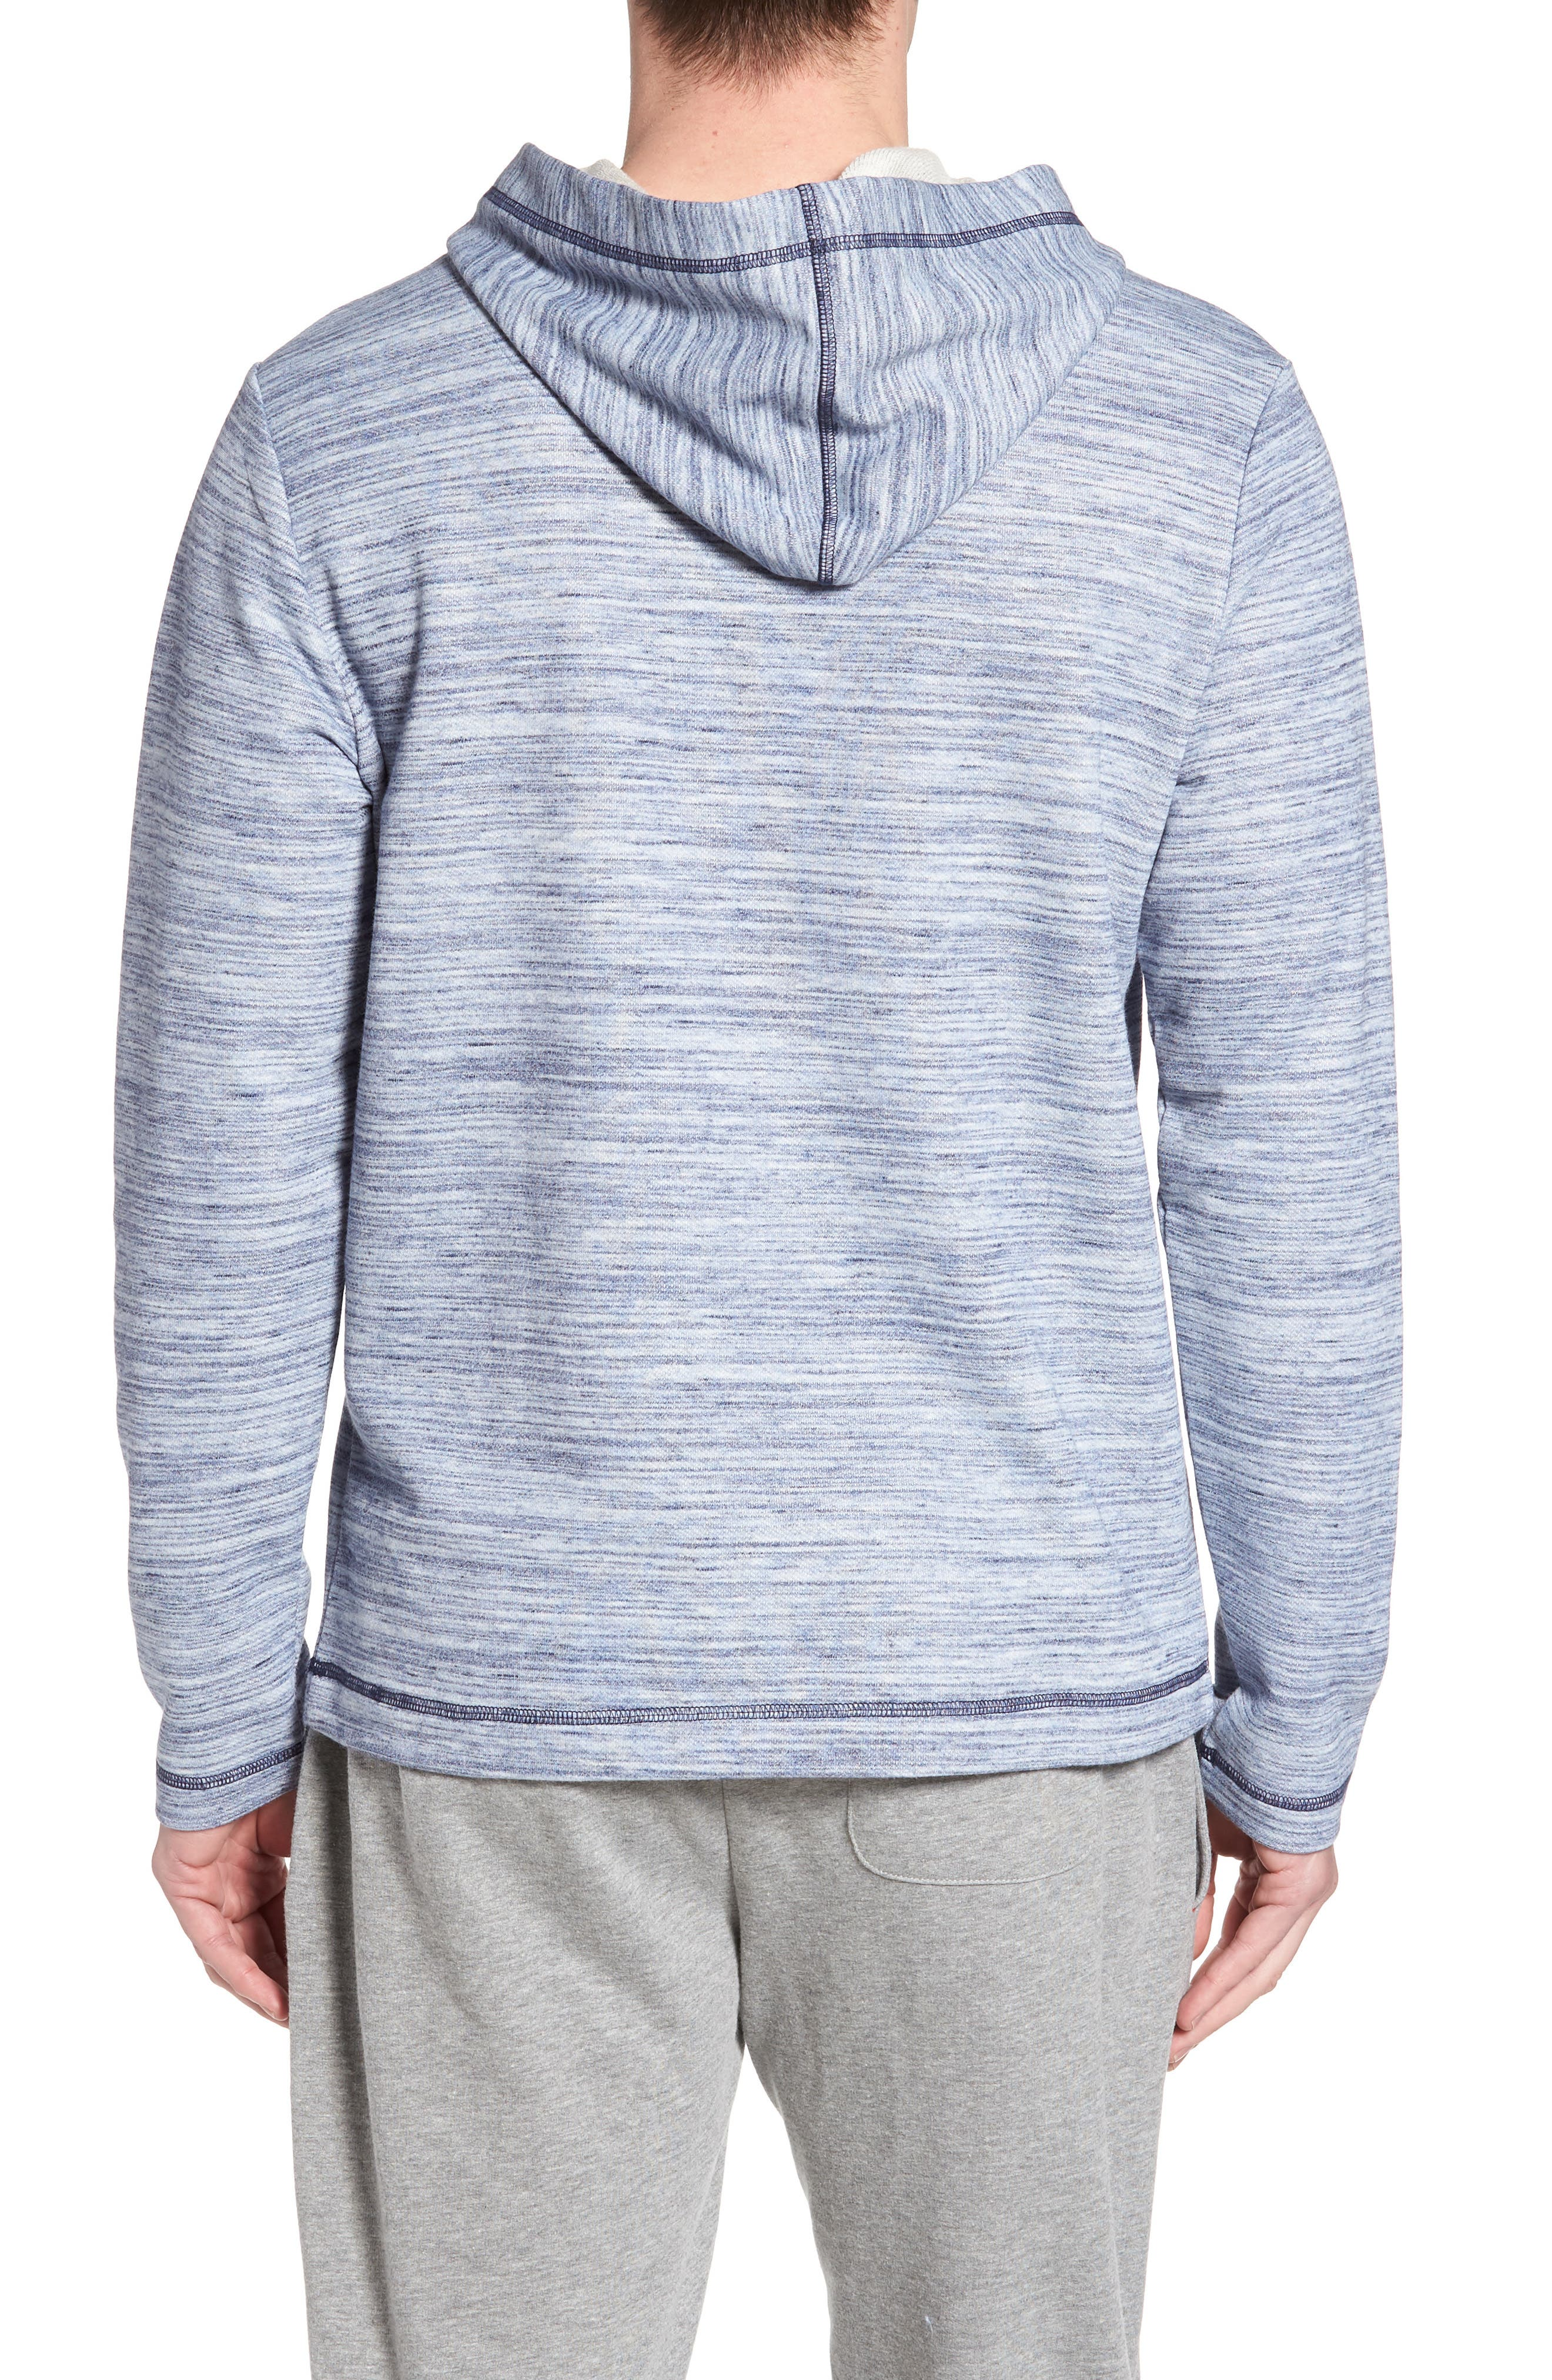 Swept in Waves Hoodie,                             Alternate thumbnail 2, color,                             Alfresco French Terry